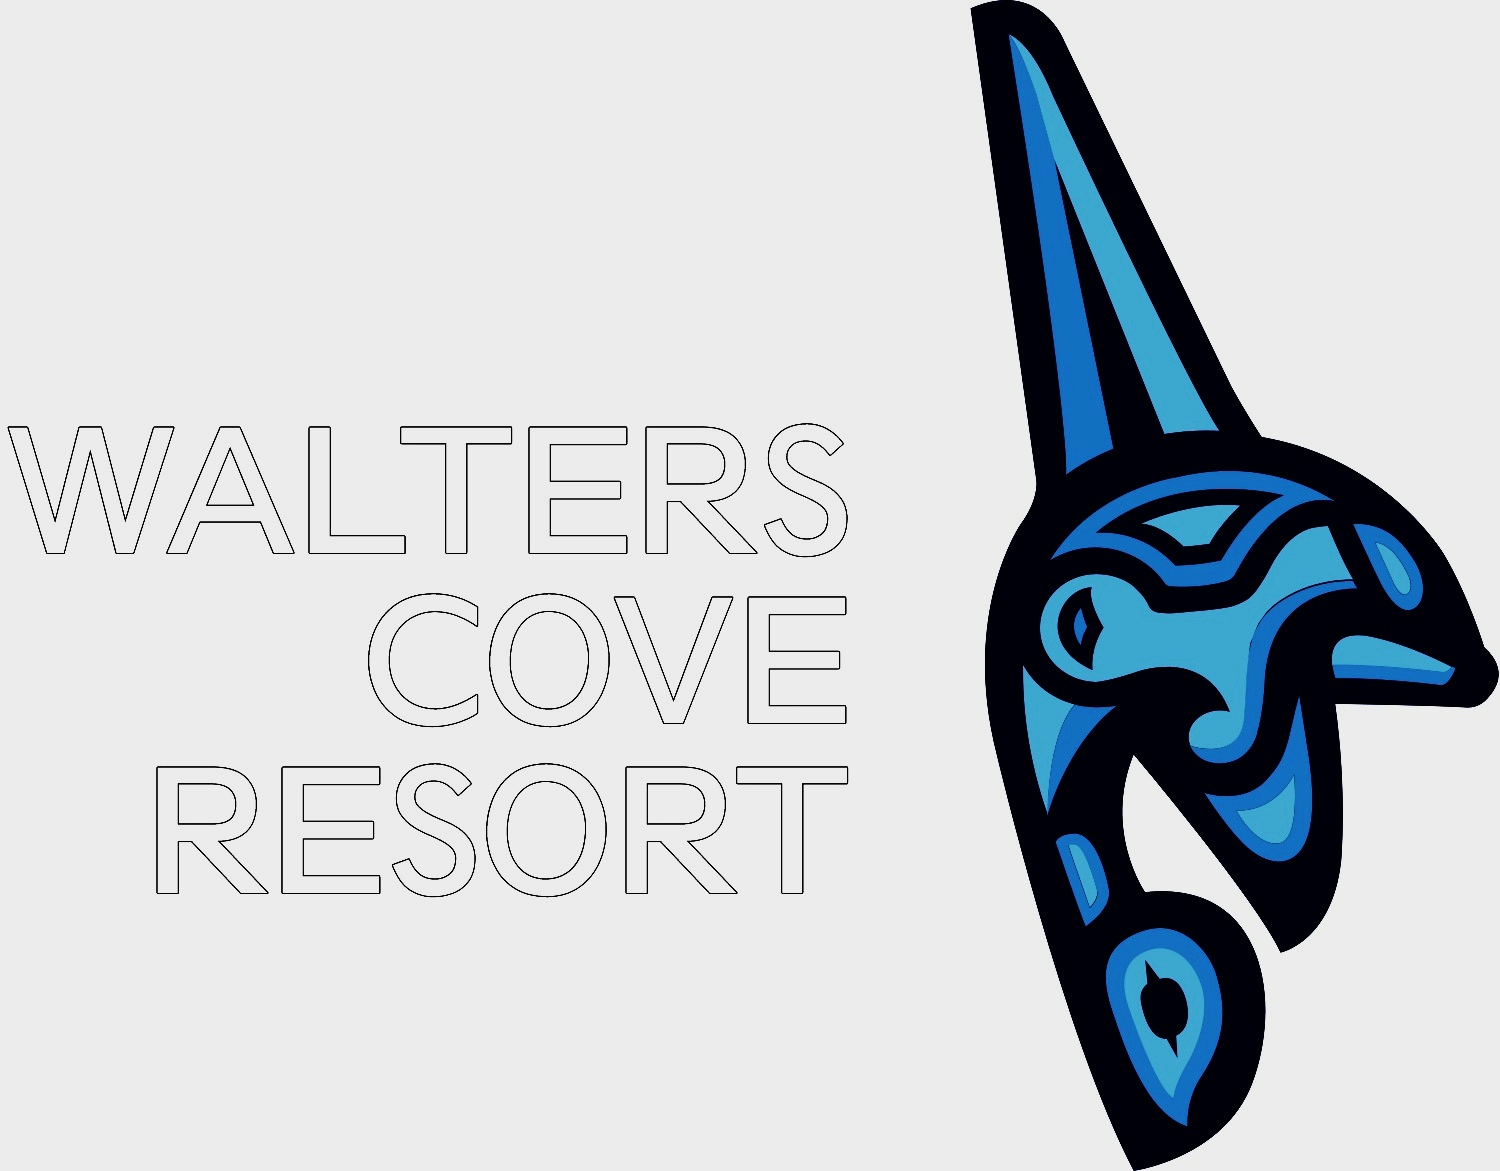 Walters Cove Resort